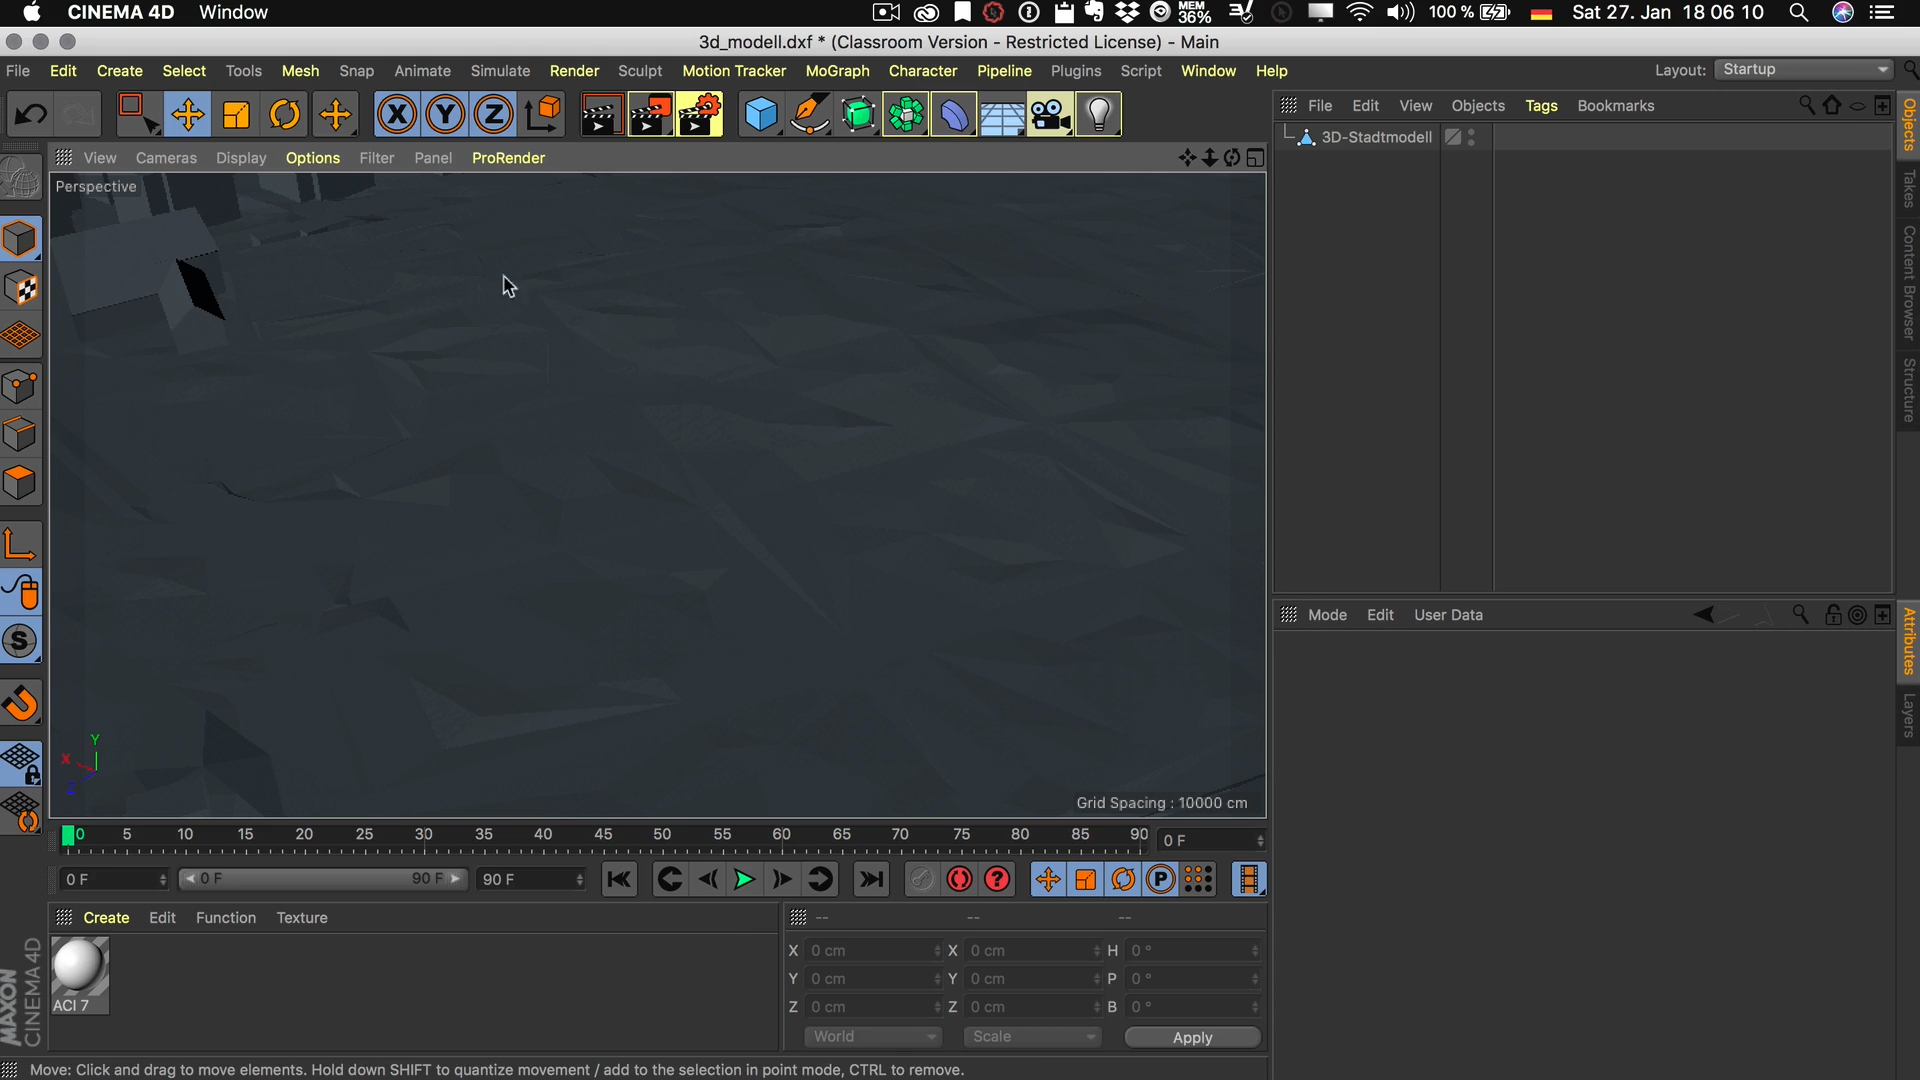 Cinema4D 3D-Stadtmodell Polygon Struktur ohne Phong Tag